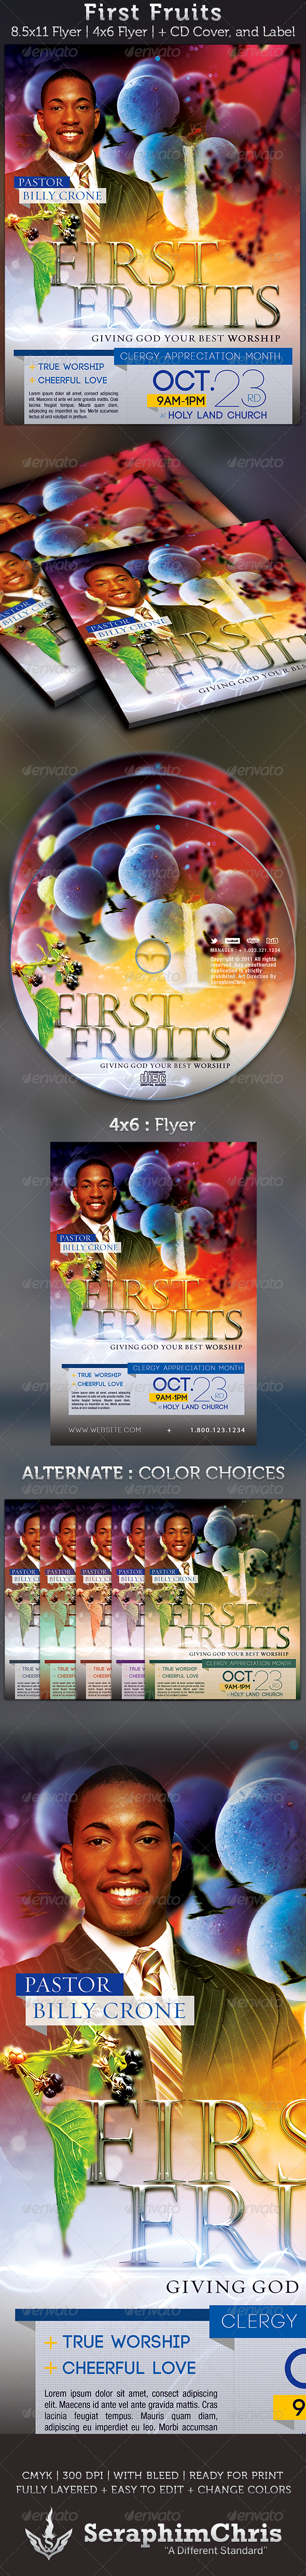 First Fruits: Church Flyer and CD Cover Template - Church Flyers